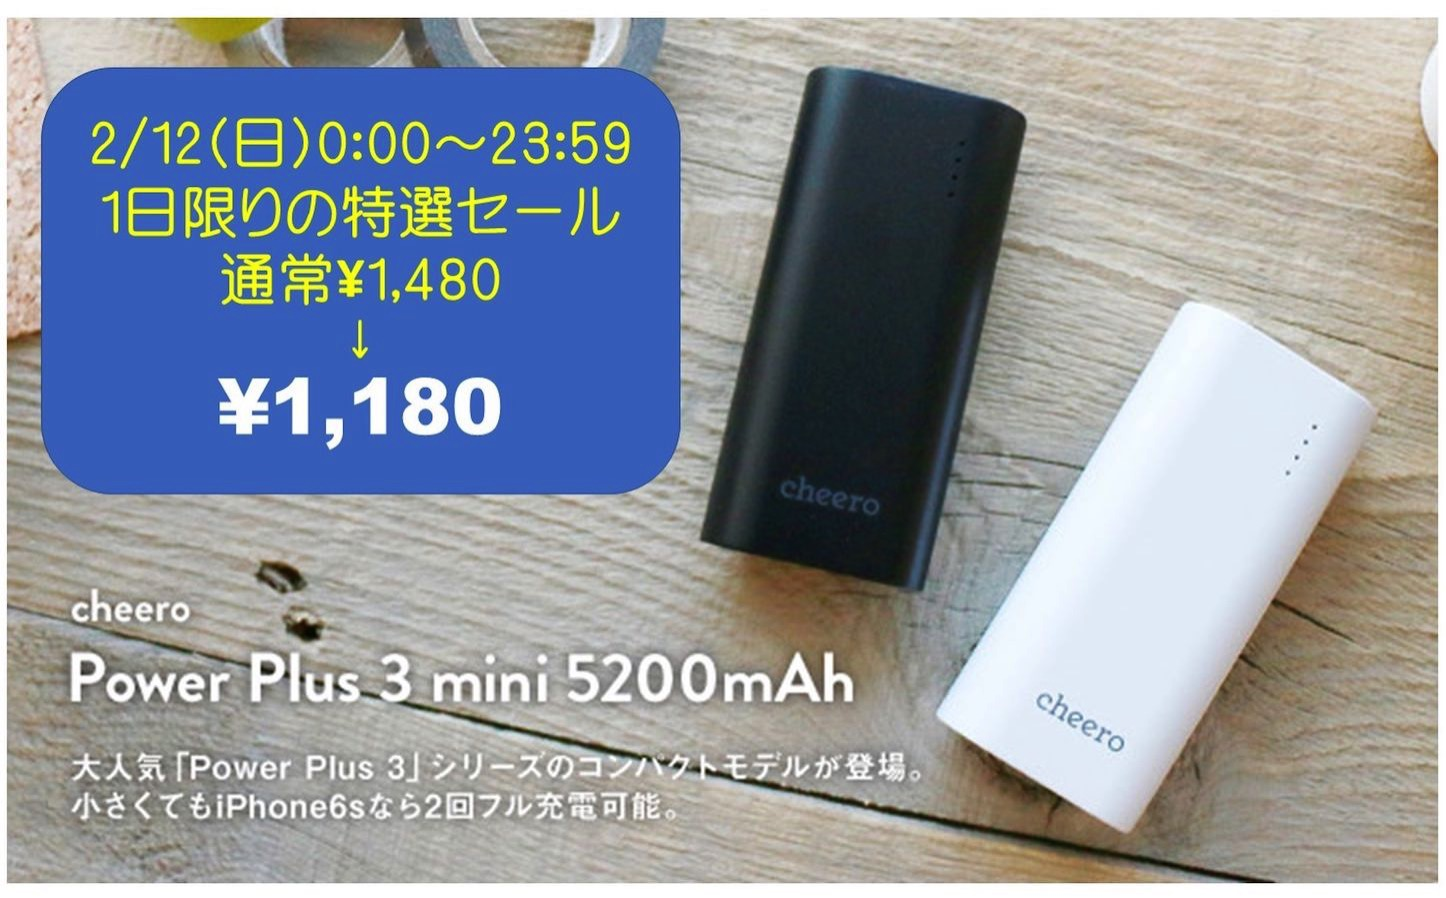 Cheero power plus mini 3 5200 sale